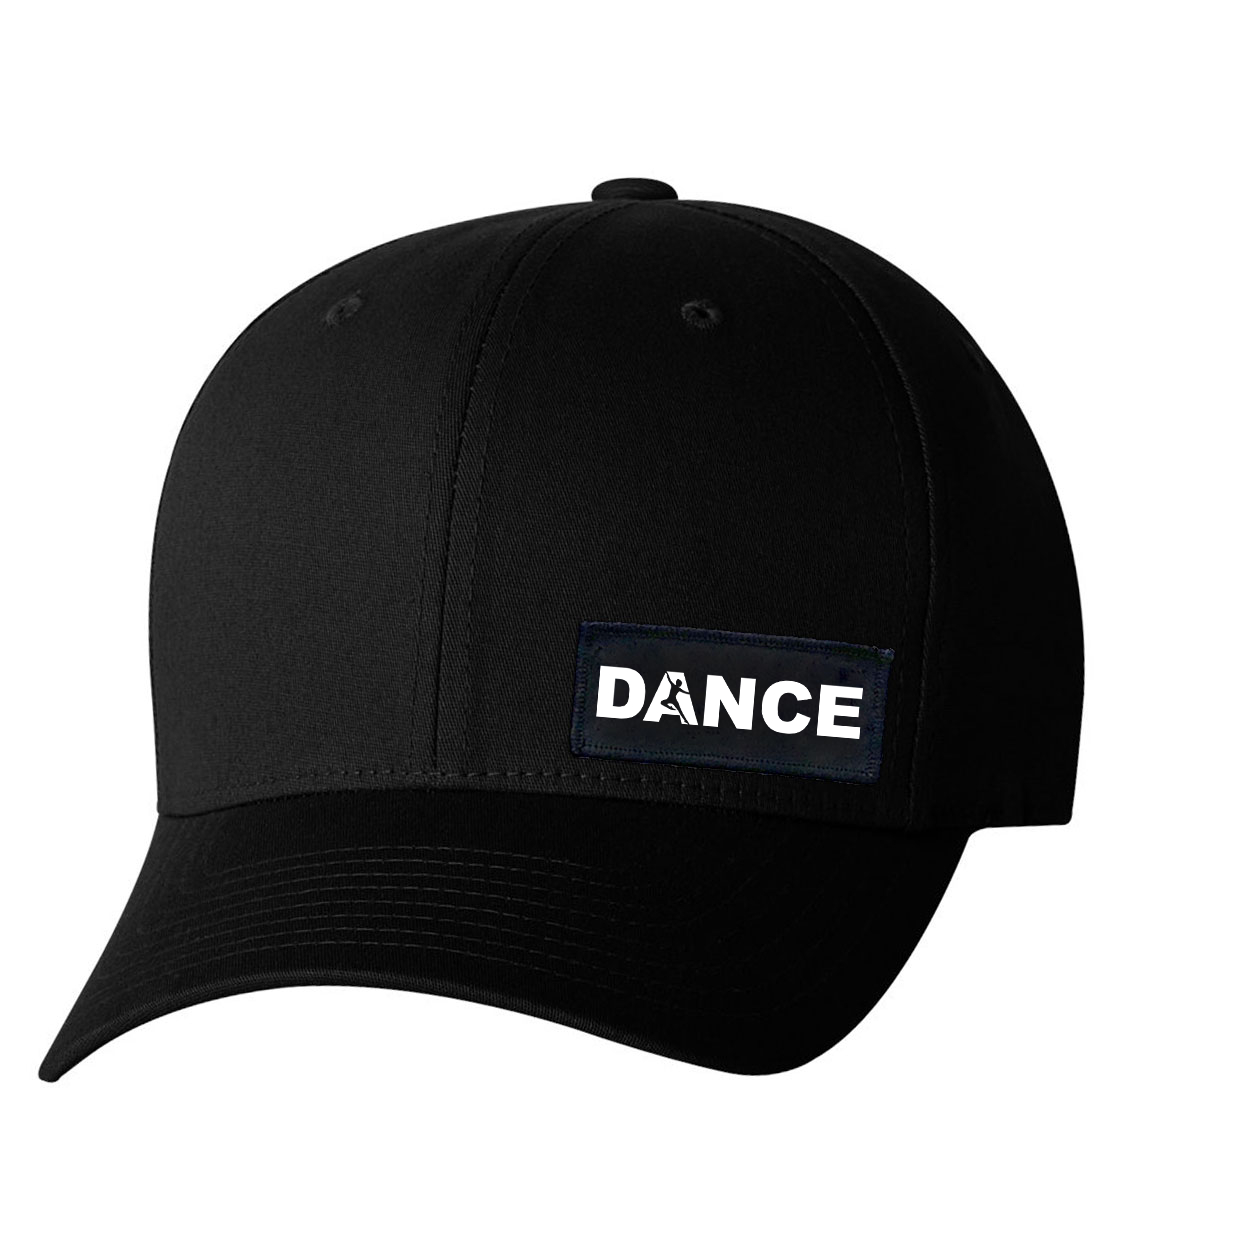 Dance Silhouette Logo Night Out Woven Patch Flex-Fit Hat Black (White Logo)